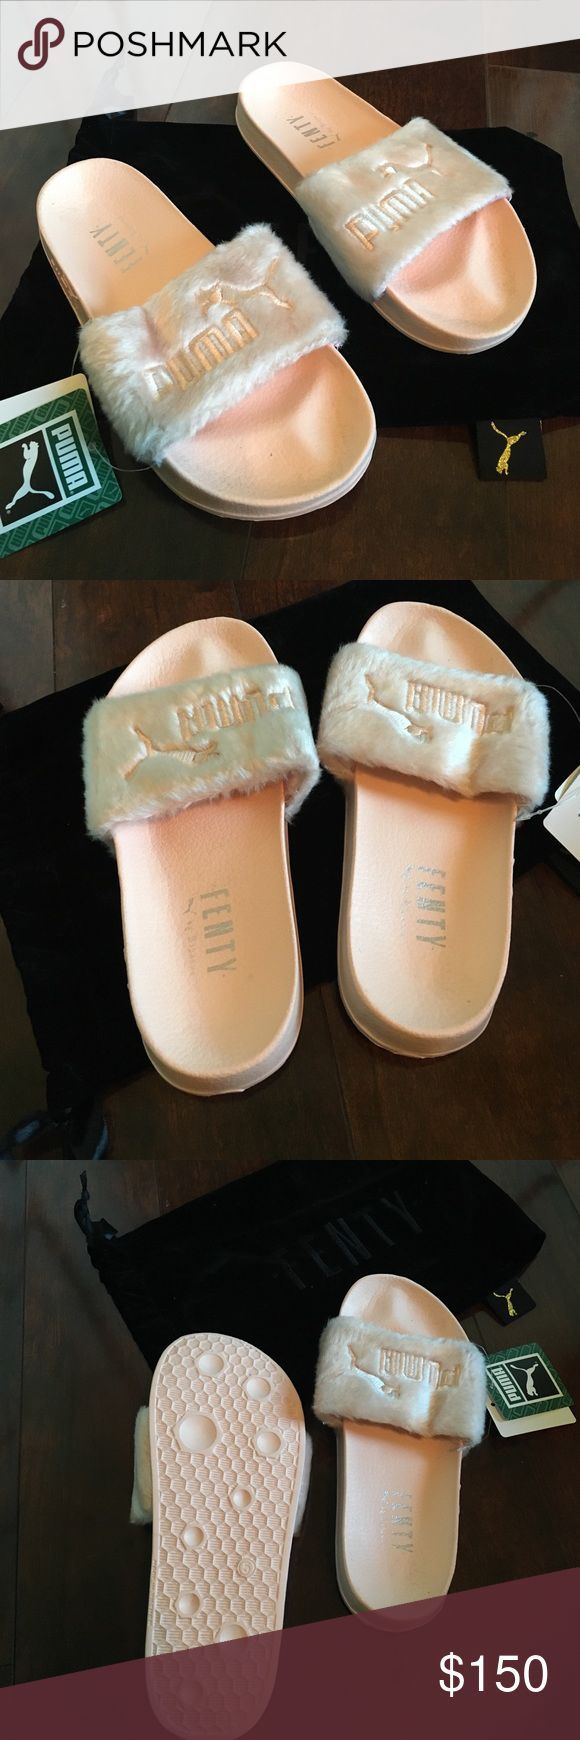 Fenty Puma slides Authentic Rhianna Puma Fenty slides. Got black and pink ones and I like the black ones better so selling these. Only shipping the pair of slides and dust bag. NOT box. They're described size 8.5 but they fit me perfectly and I'm on the 7.5/8 size Puma Shoes Slippers